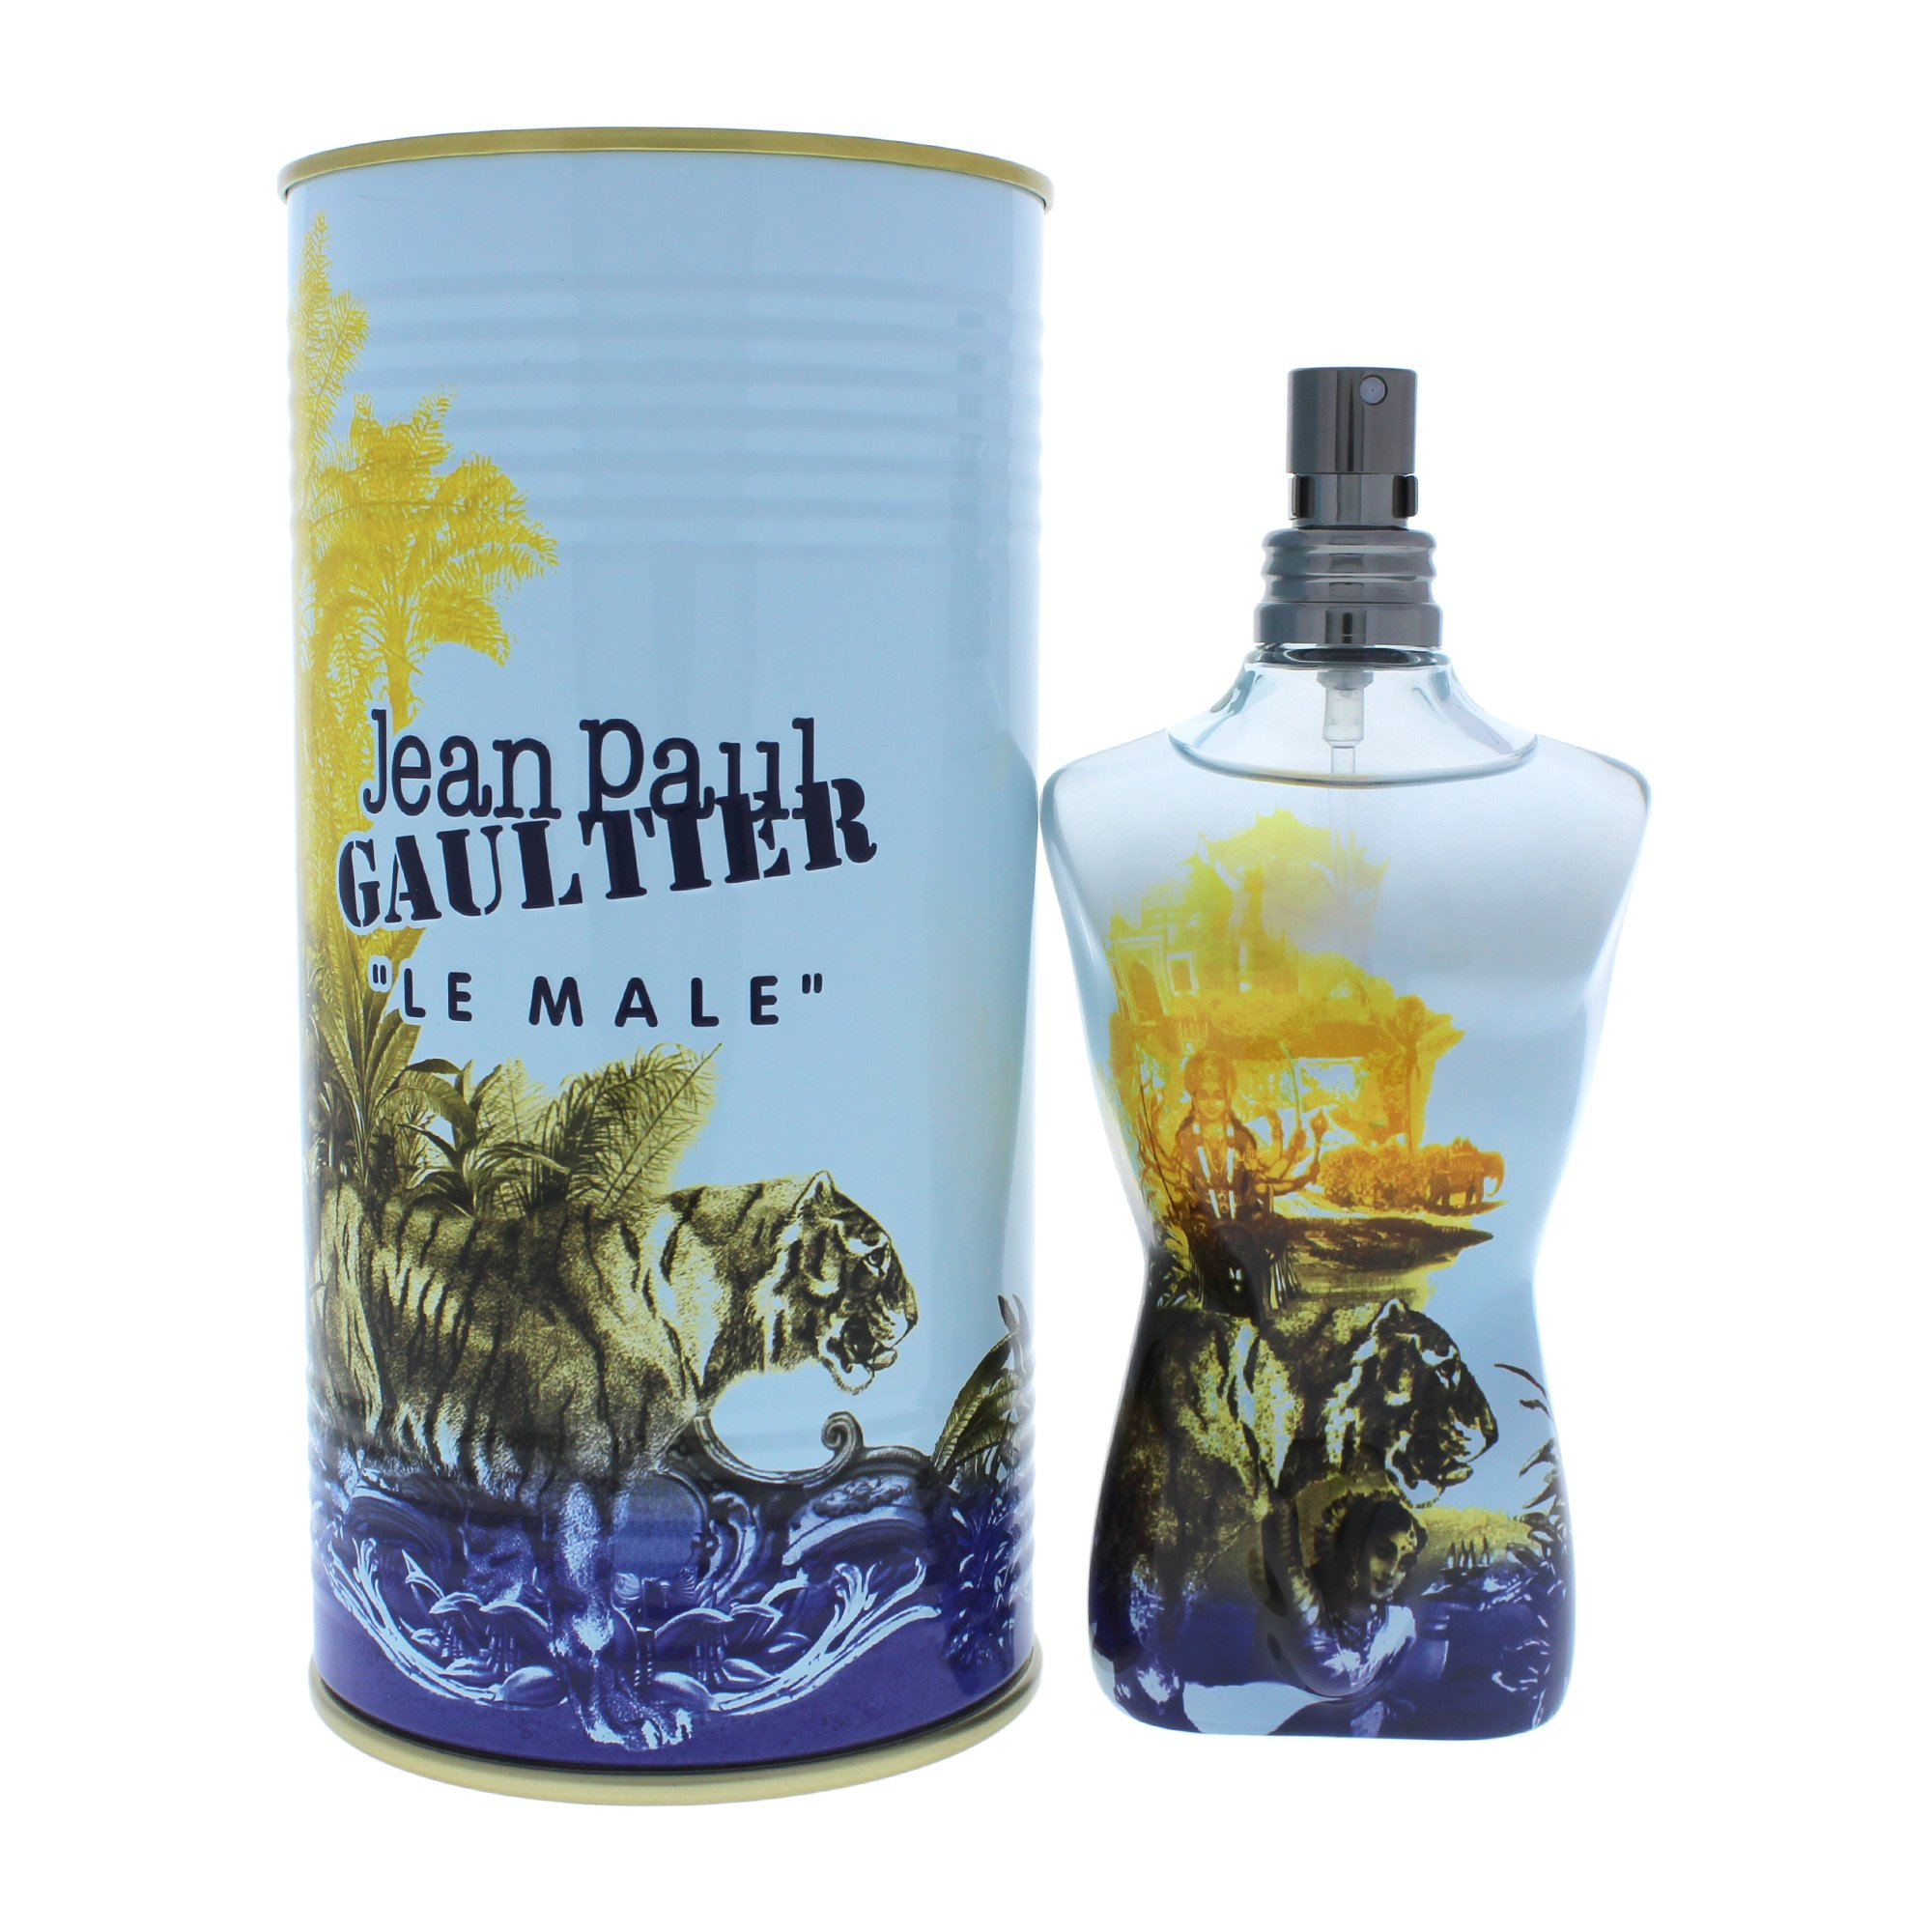 Jean Paul Gaultier Summer Cologne Tonique Spray, 4.2 Ounce